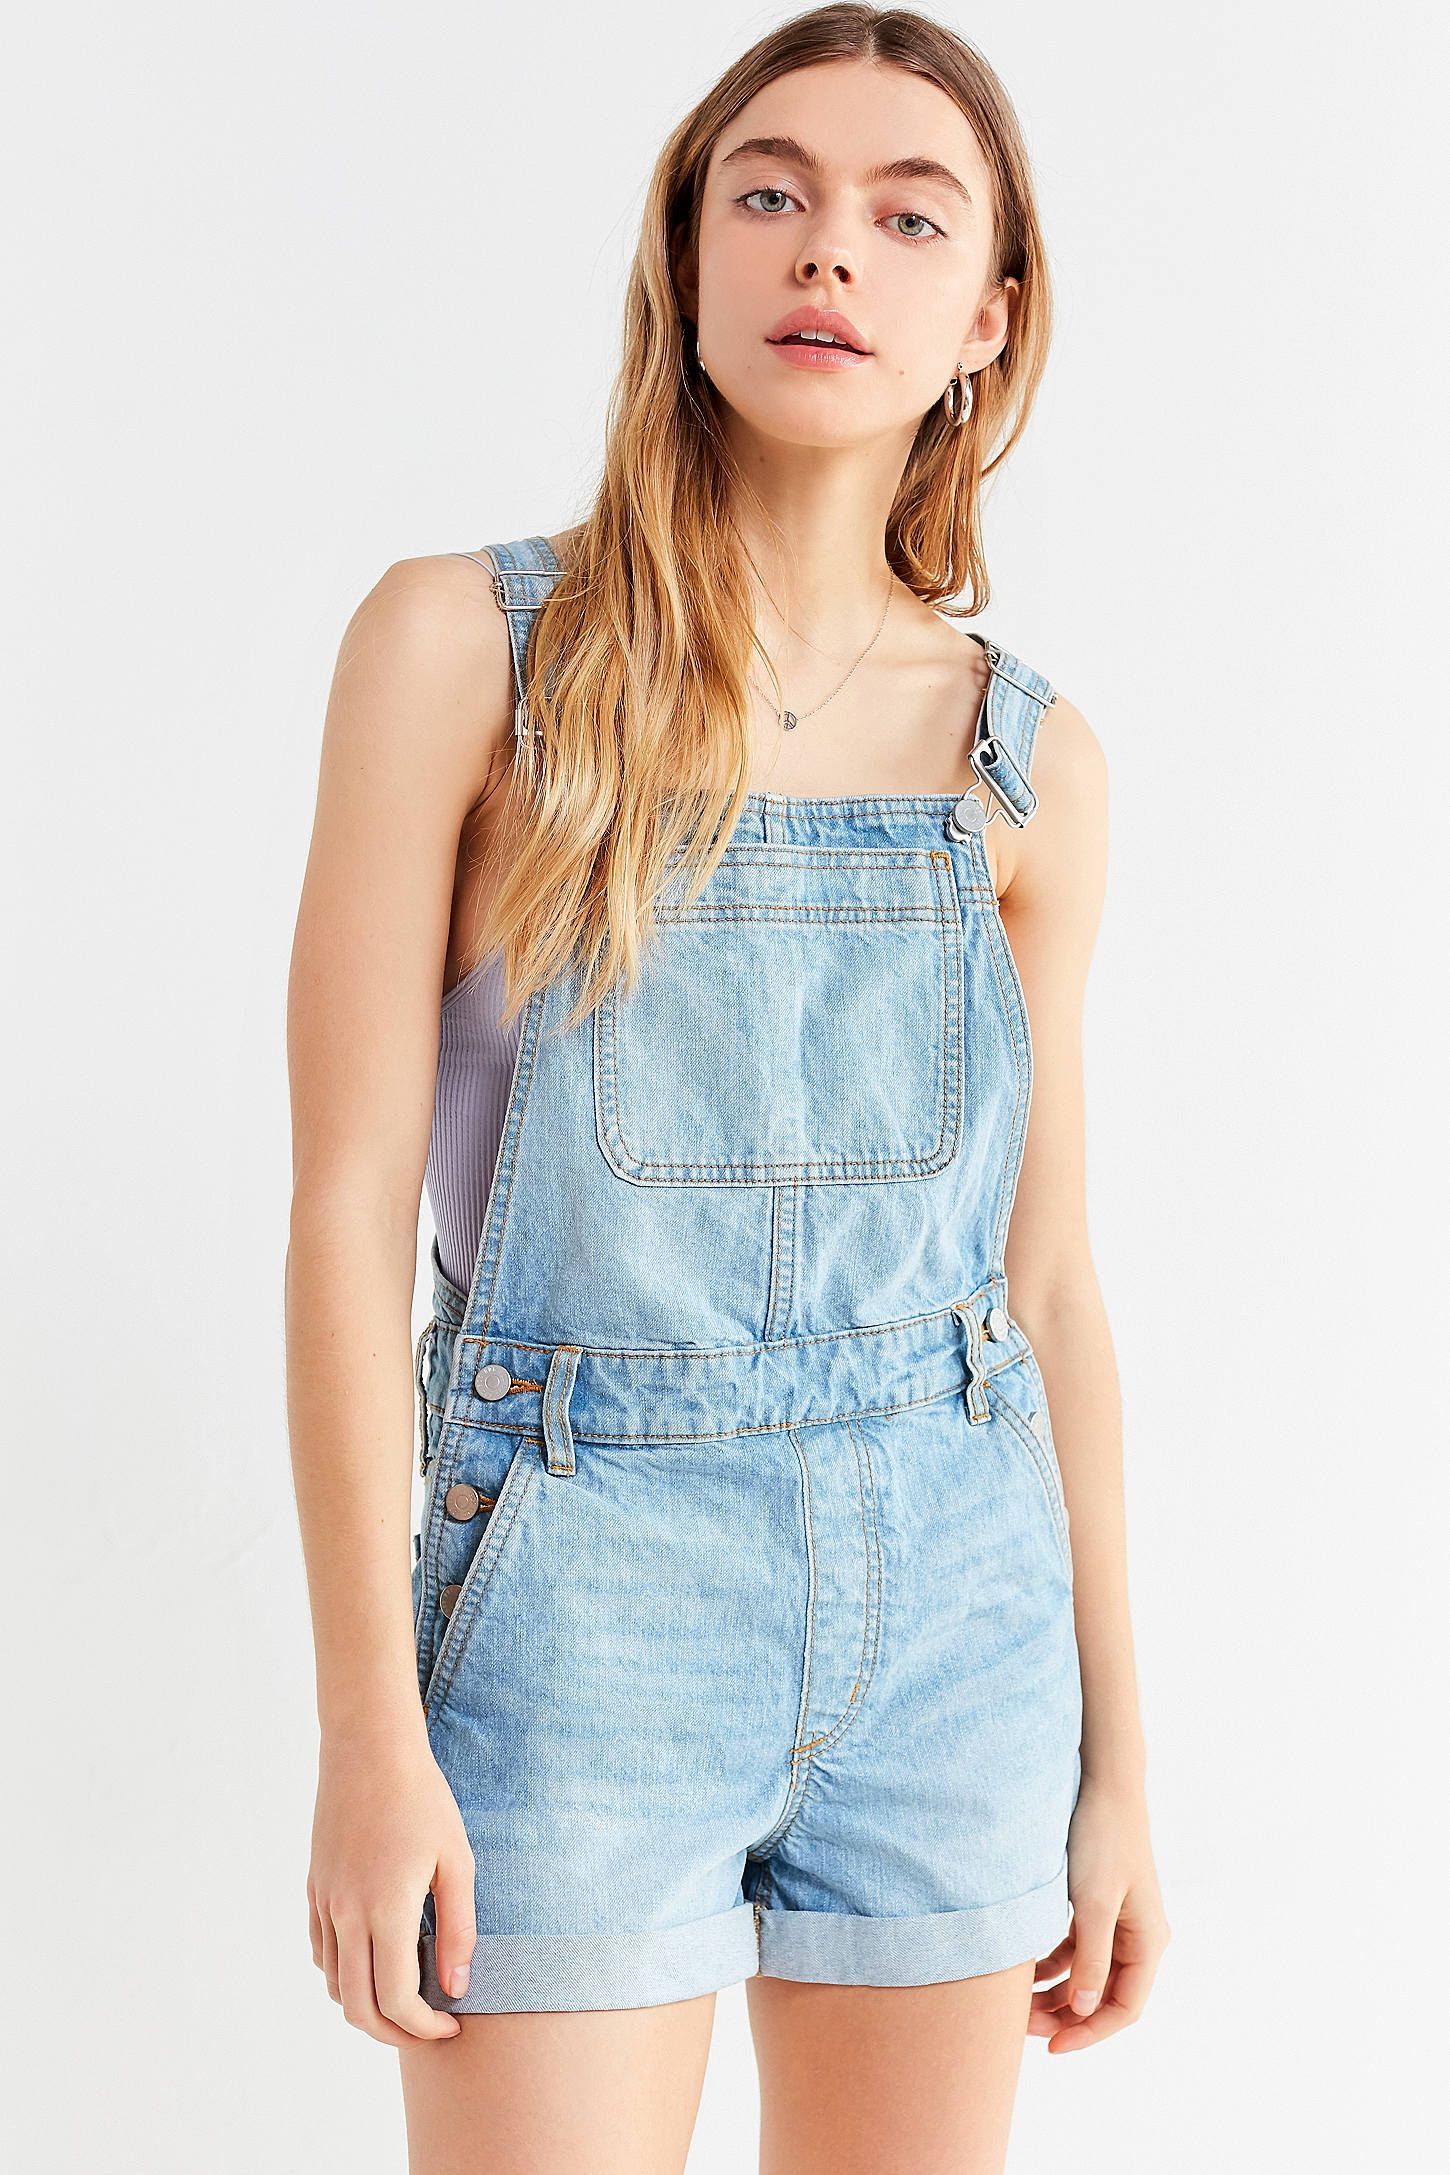 a6fcb1c920 Shop BDG Linda Denim Shortall Overall at Urban Outfitters today. We carry  all the latest styles, colors and brands for you to choose from right here.